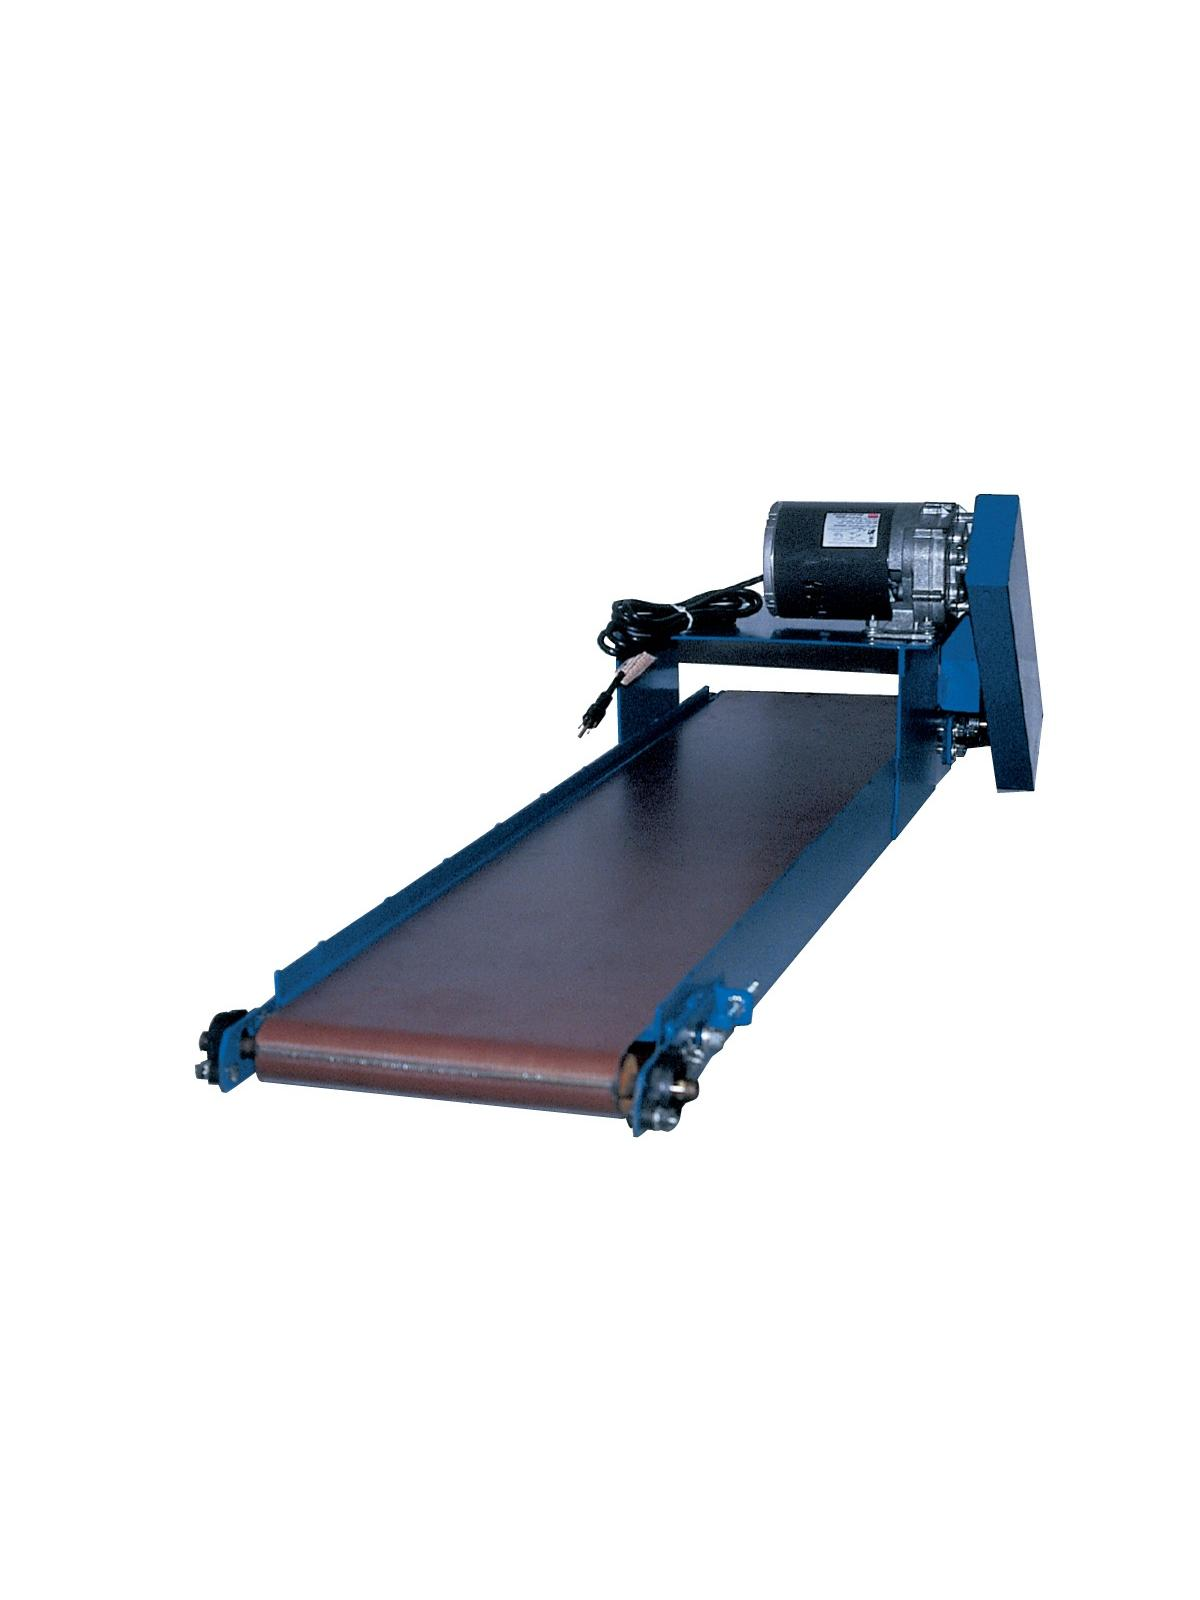 Slim line power conveyor at nationwide industrial supply llc Motorized conveyor belt